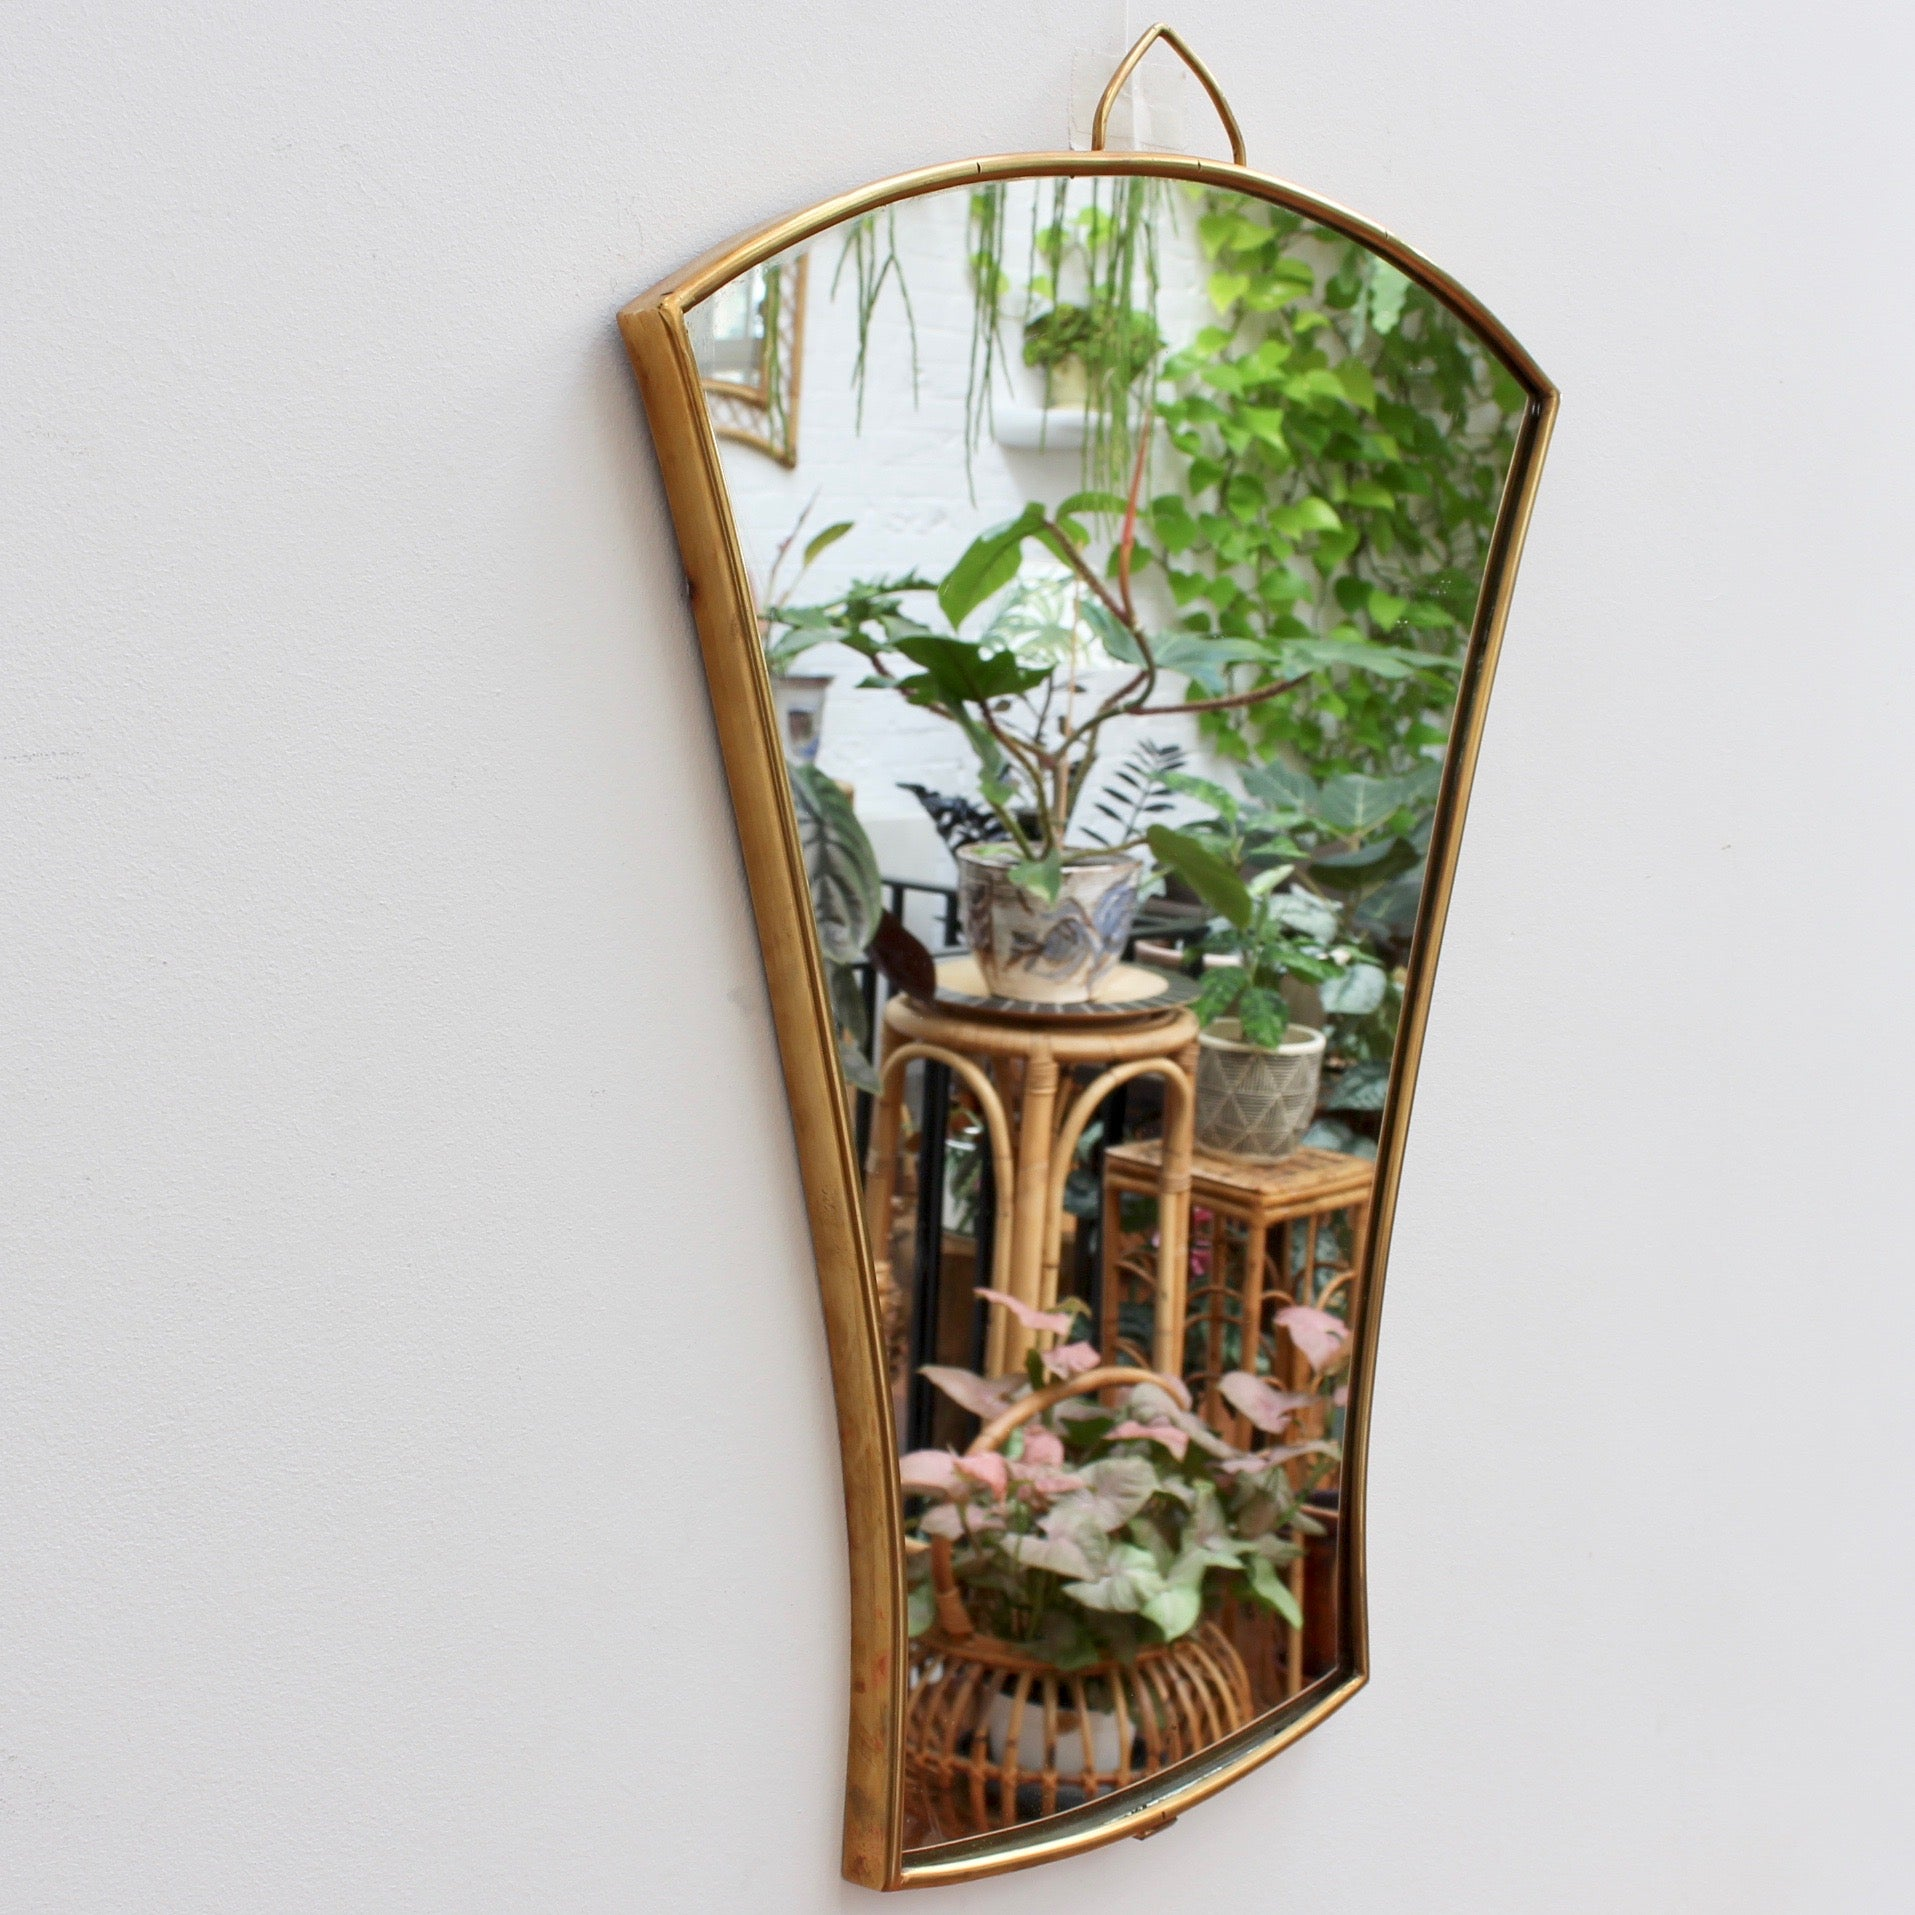 Pair of Italian Fan-Shaped Wall Mirrors with Brass Frames - Small (circa 1950s)